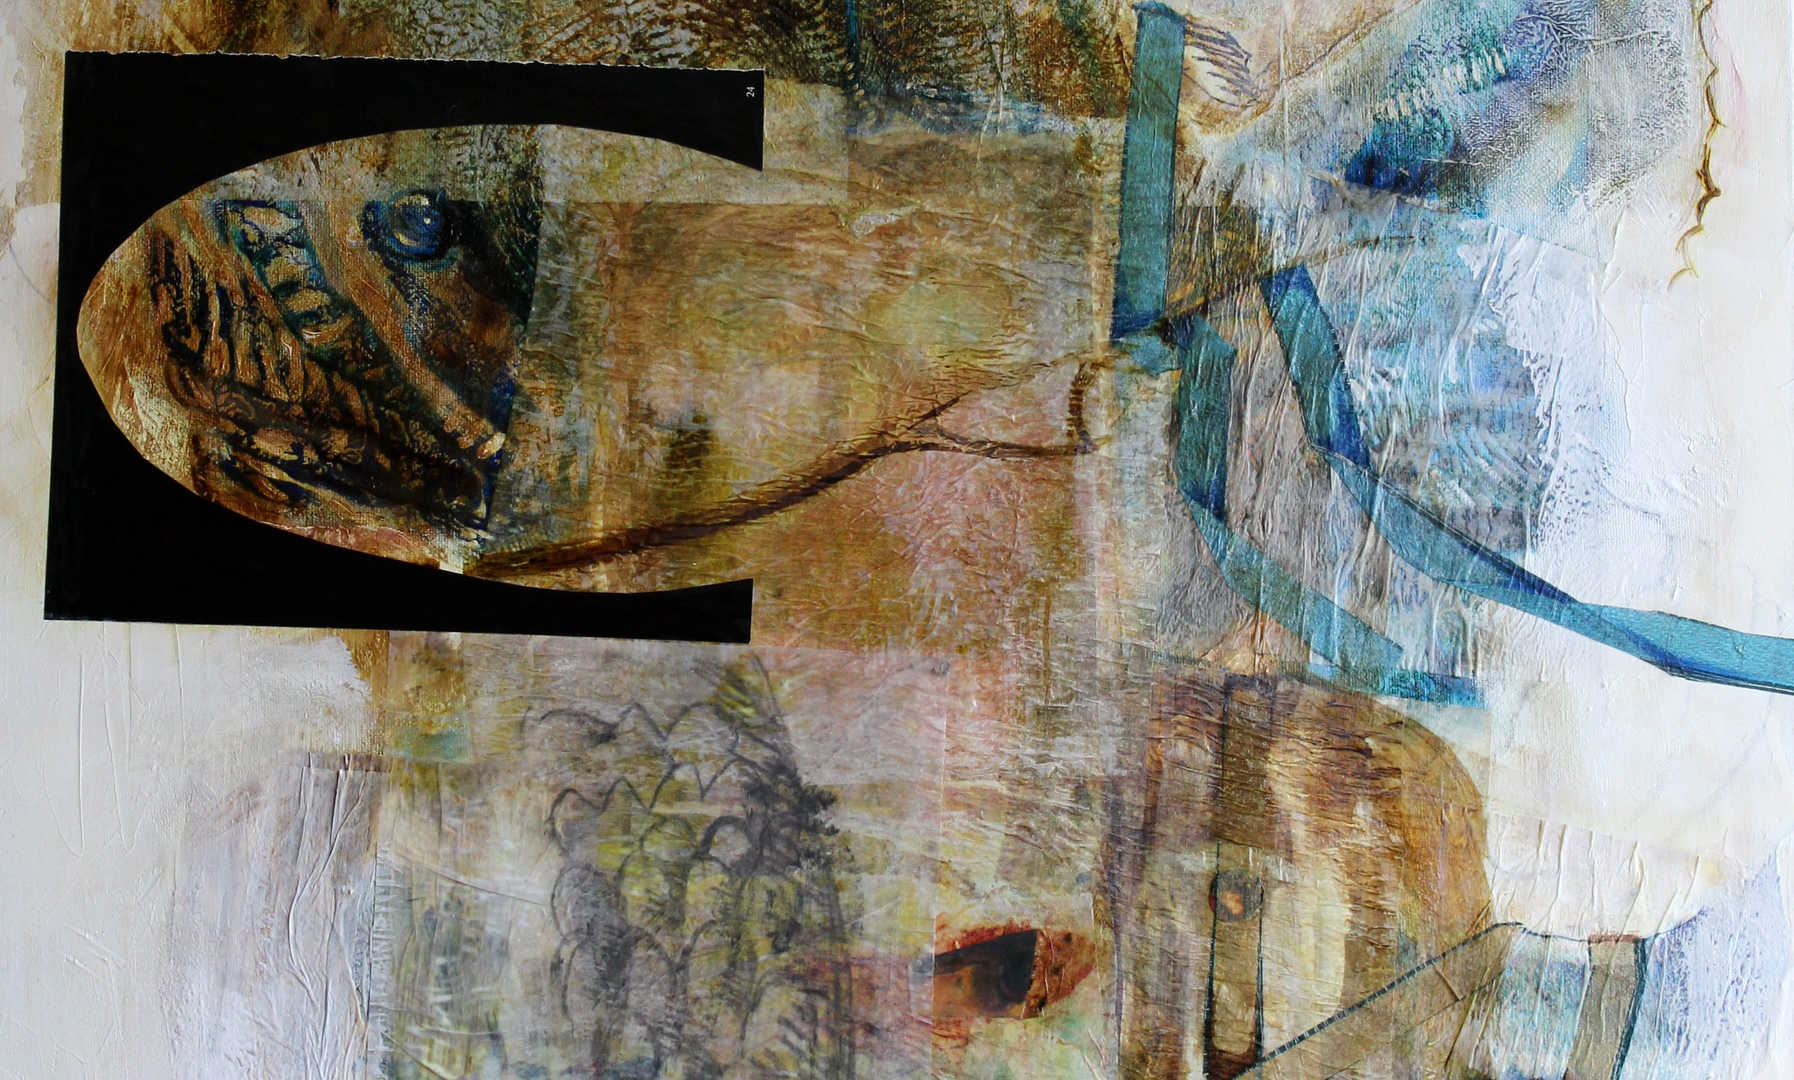 Fish Eye, 50 x 70cm, mixed media on canvas, 2014